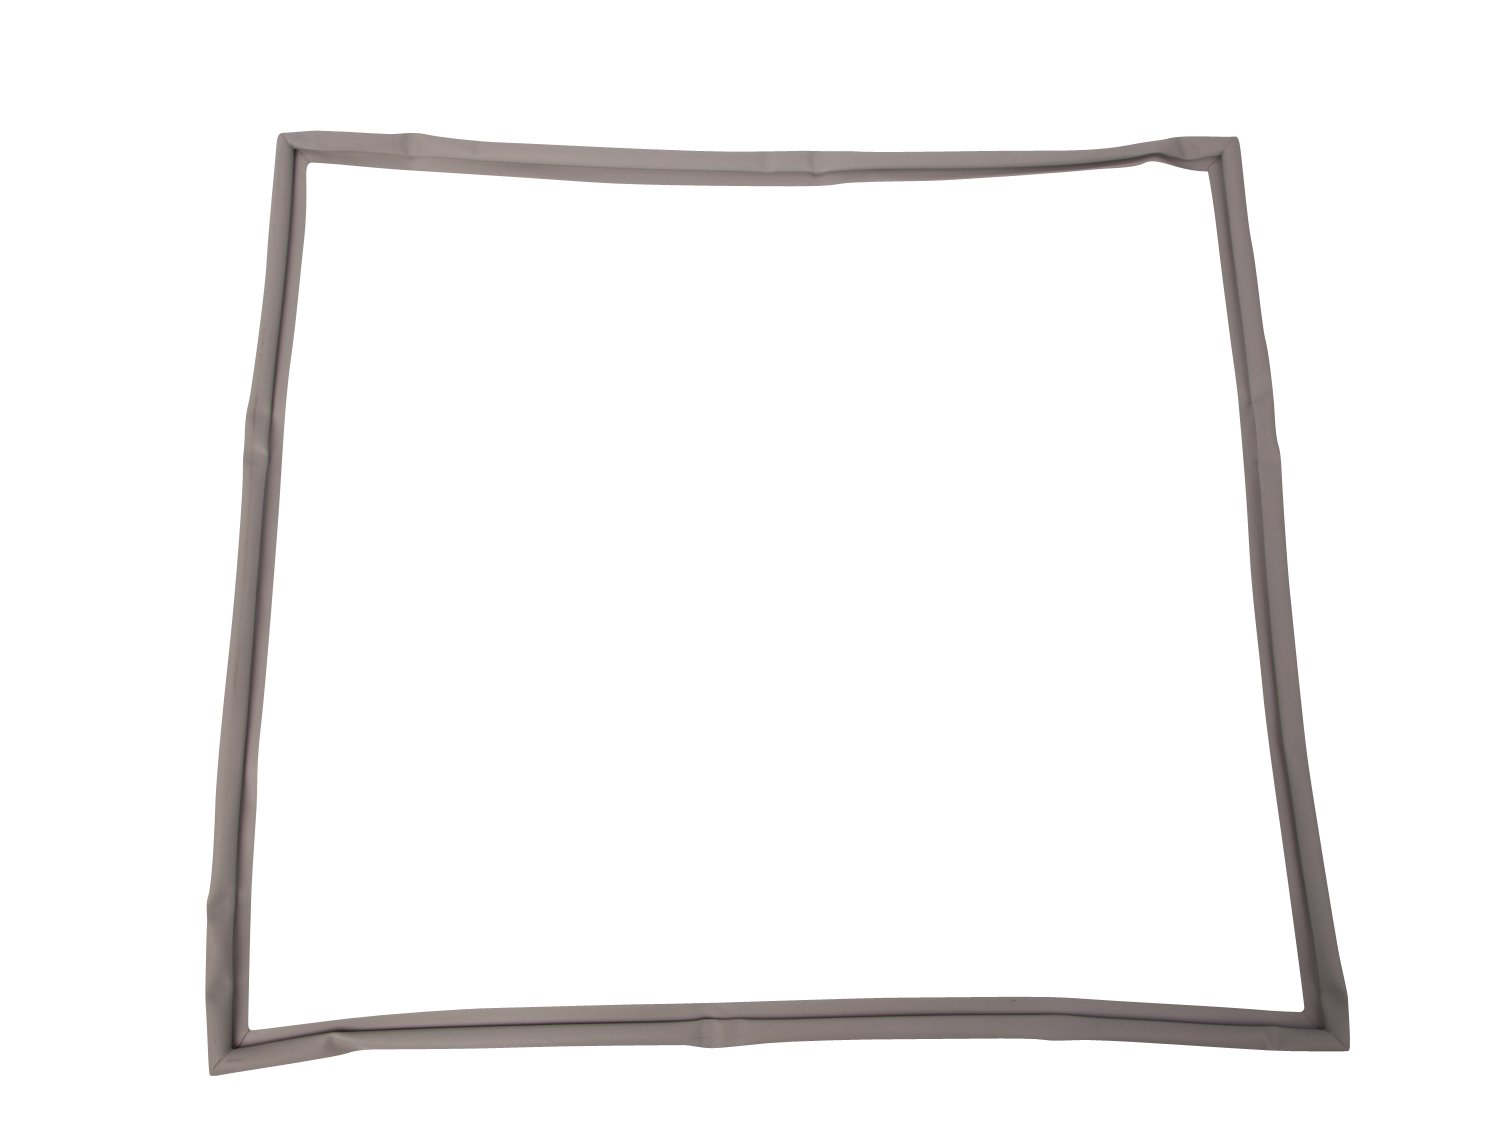 Intermetro RPC06-809 Gasket for Double Door Units